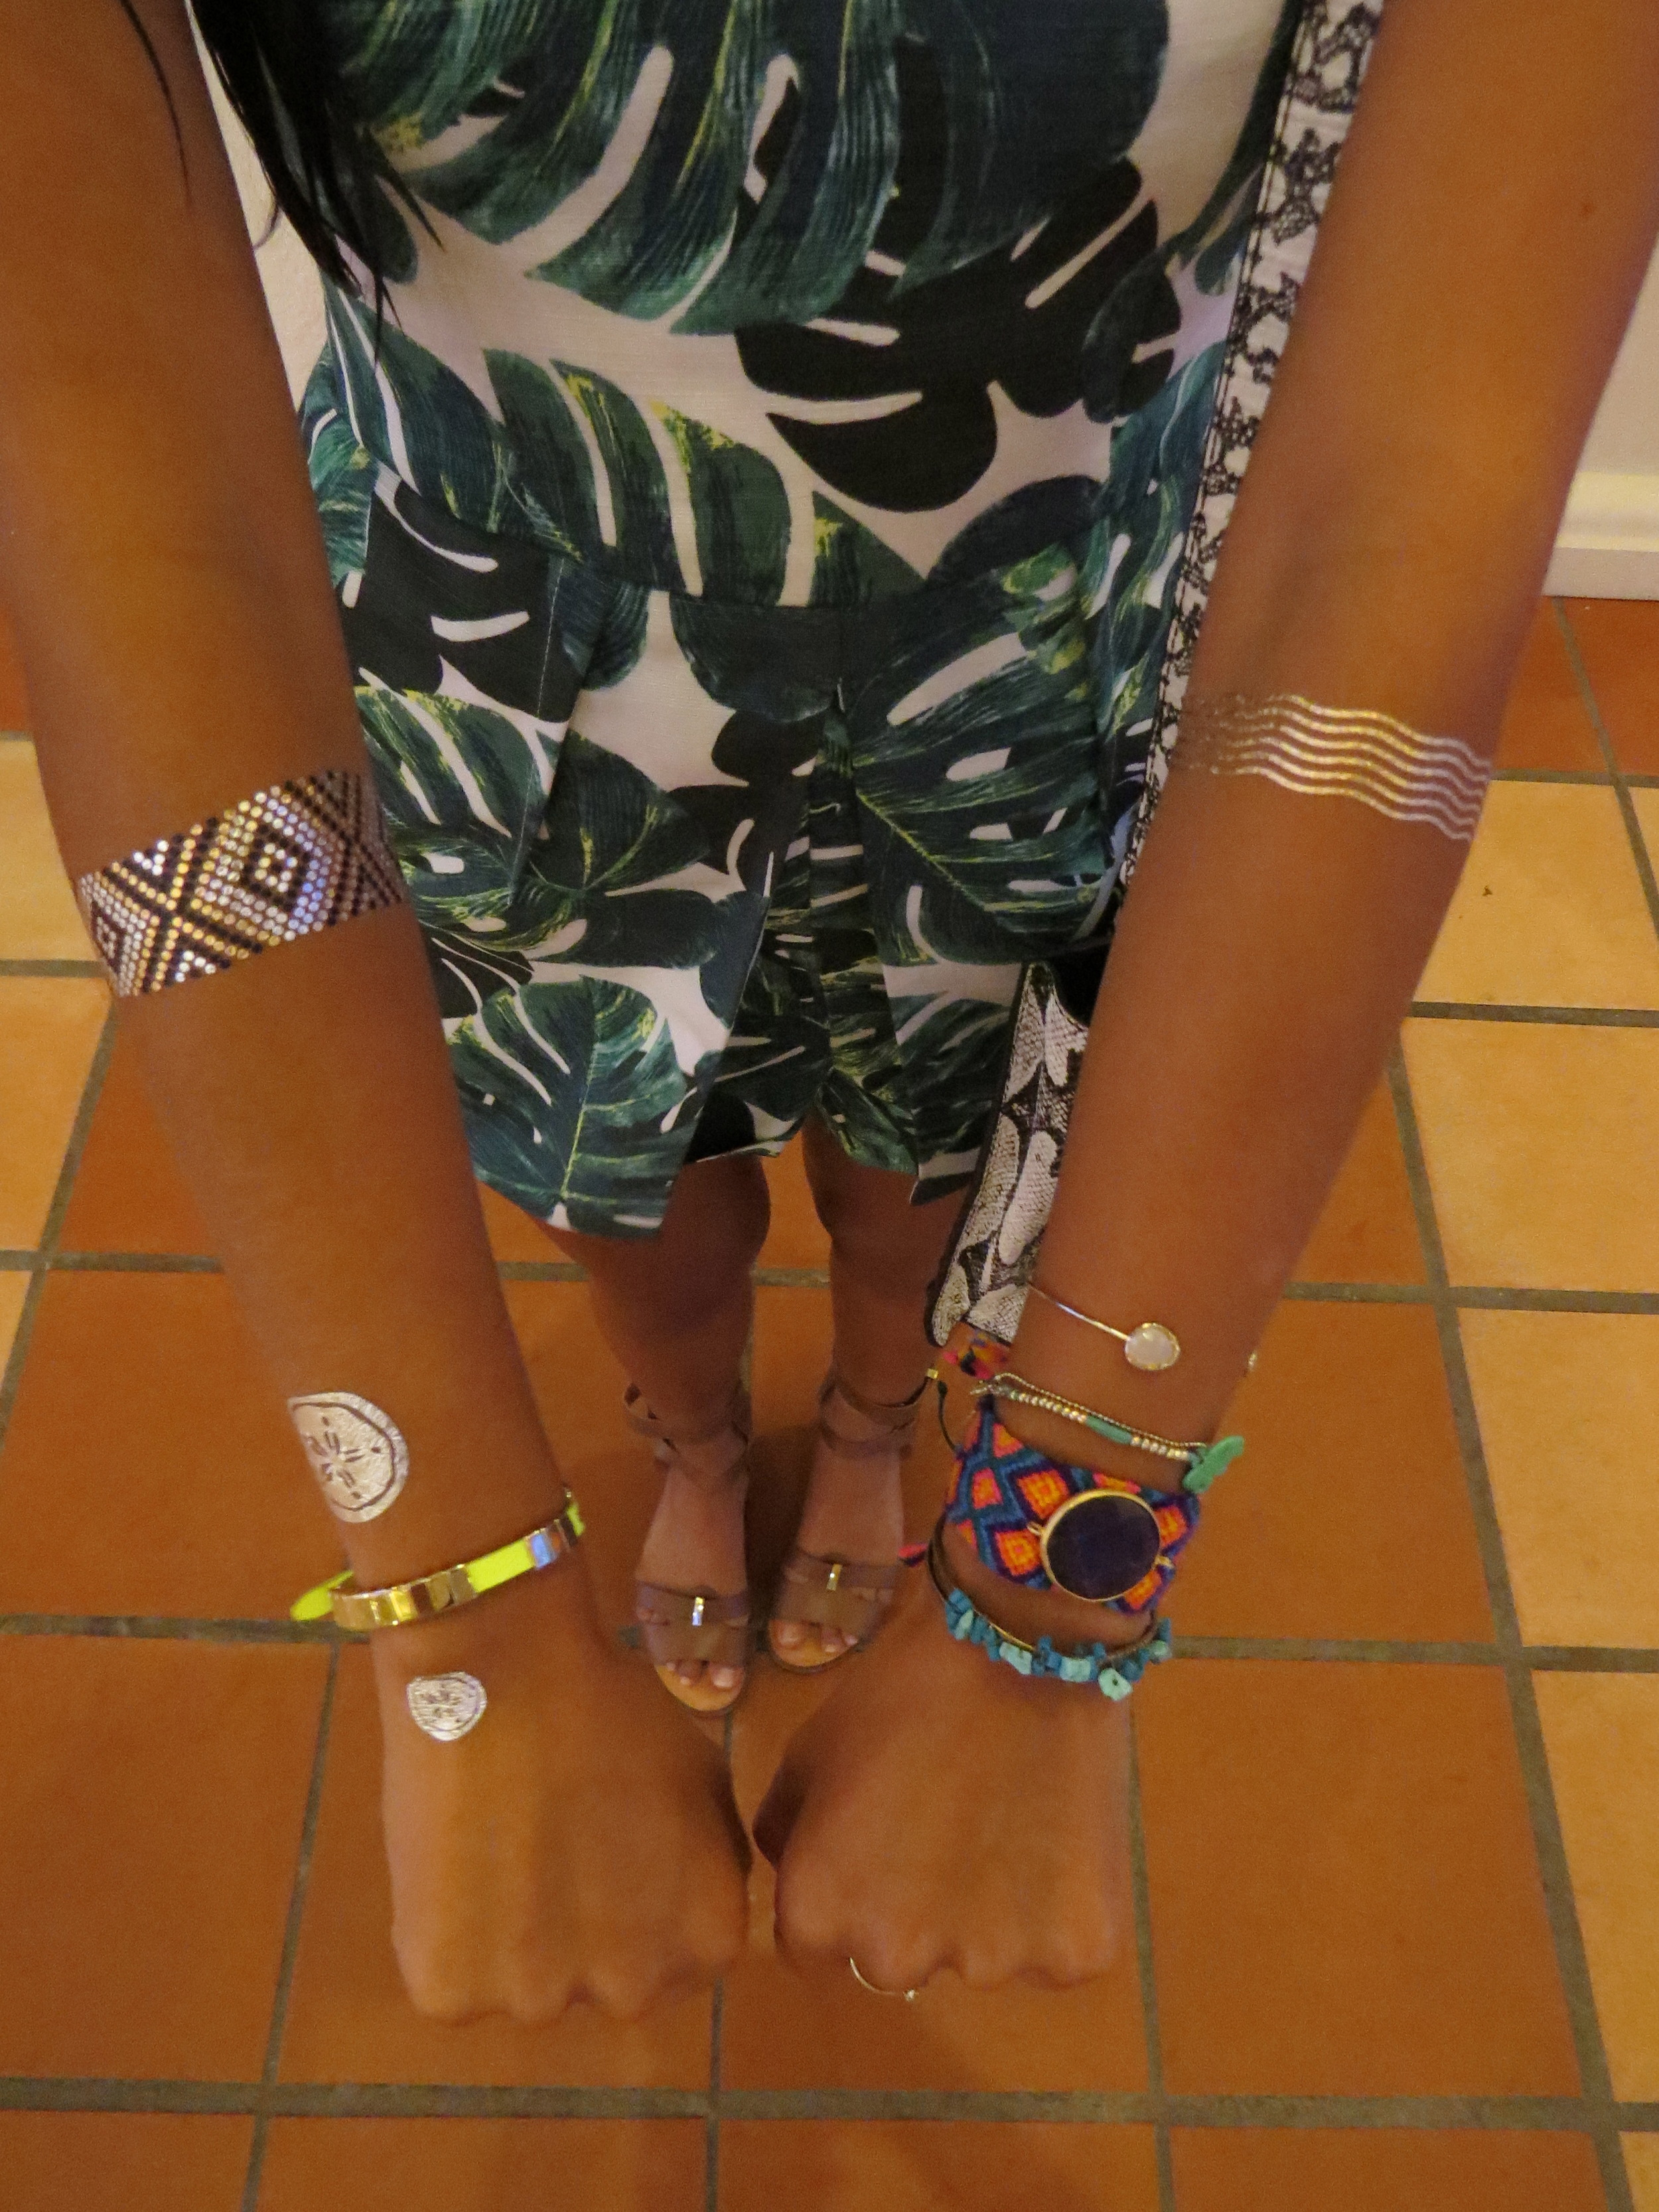 (From top to bottom & Left to Right) Flash Tattoo, Goldfish Kiss H2O; Michael Kors Neon Yellow Bracelet; Gold Cuff w/ Stone, LF; Two-Strand Teal Bracelet w/ Elephant, Antique Shop; Gold w/Turquoise Stones, Nordstrom.